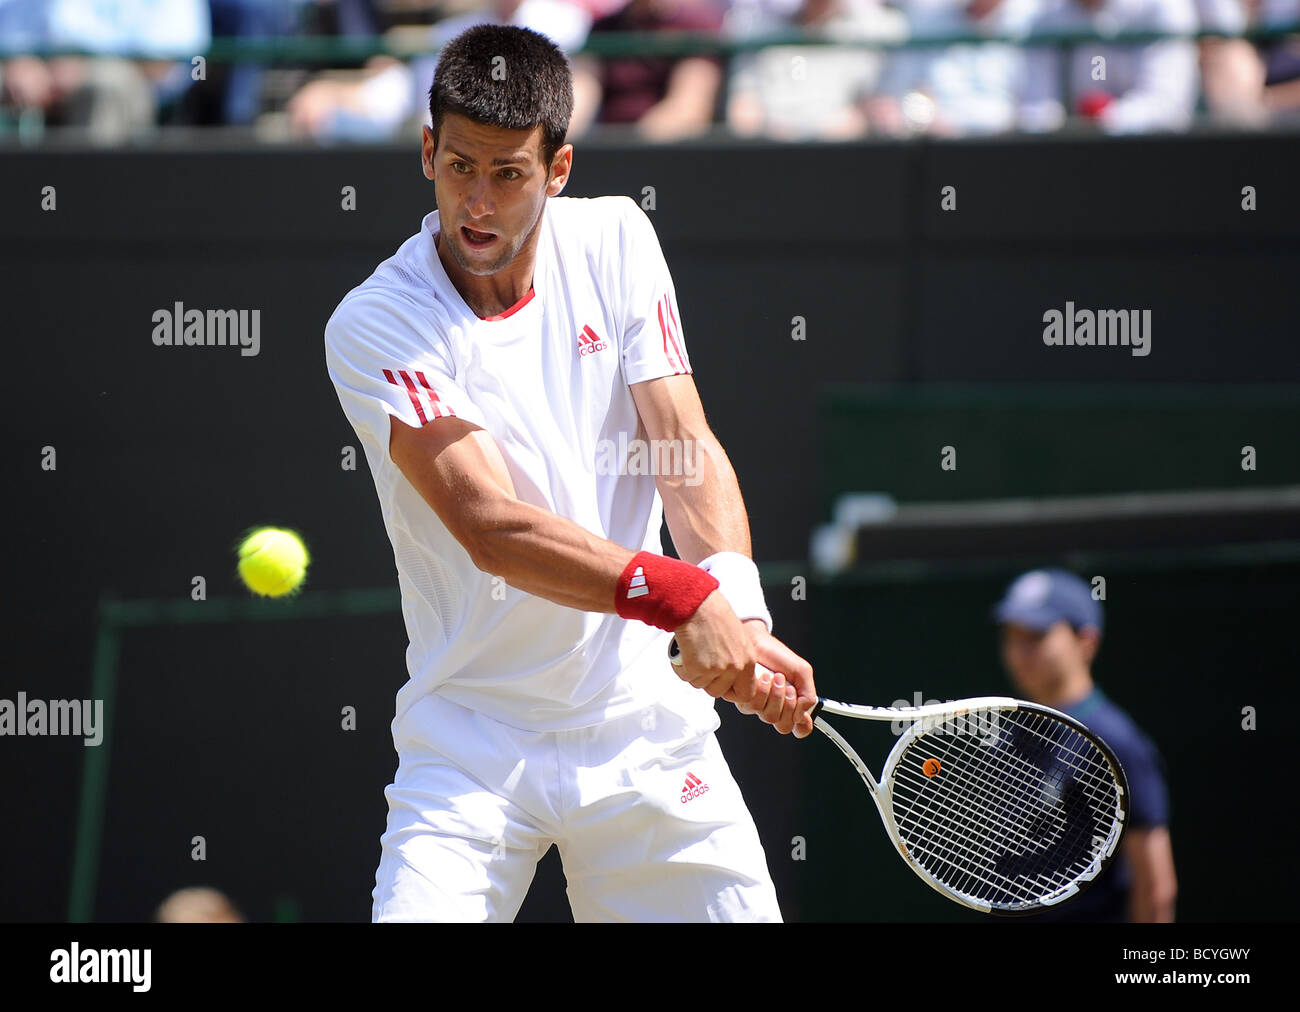 NOVAK DJOKOVIC SERBIA WIMBLEDON LONDON ENGLAND 24 June 2009 - Stock Image